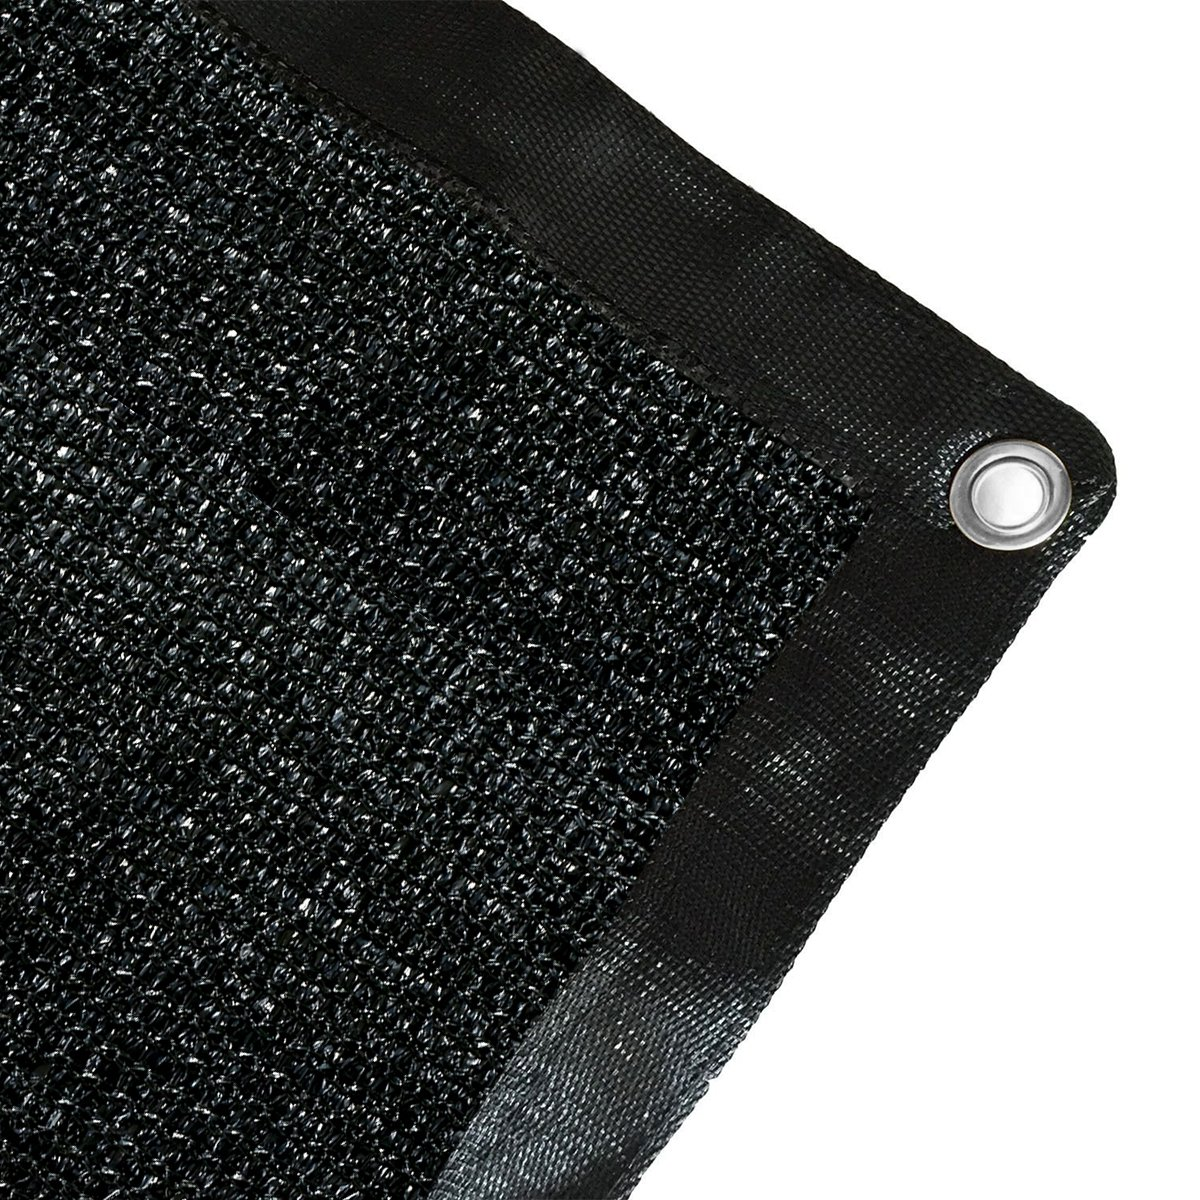 Ecover 10x10ft Sun Mesh Shade Panel,90% Shade Cloth UV Sunblock with Grommets for Patio/Pergola/Canopy,Black